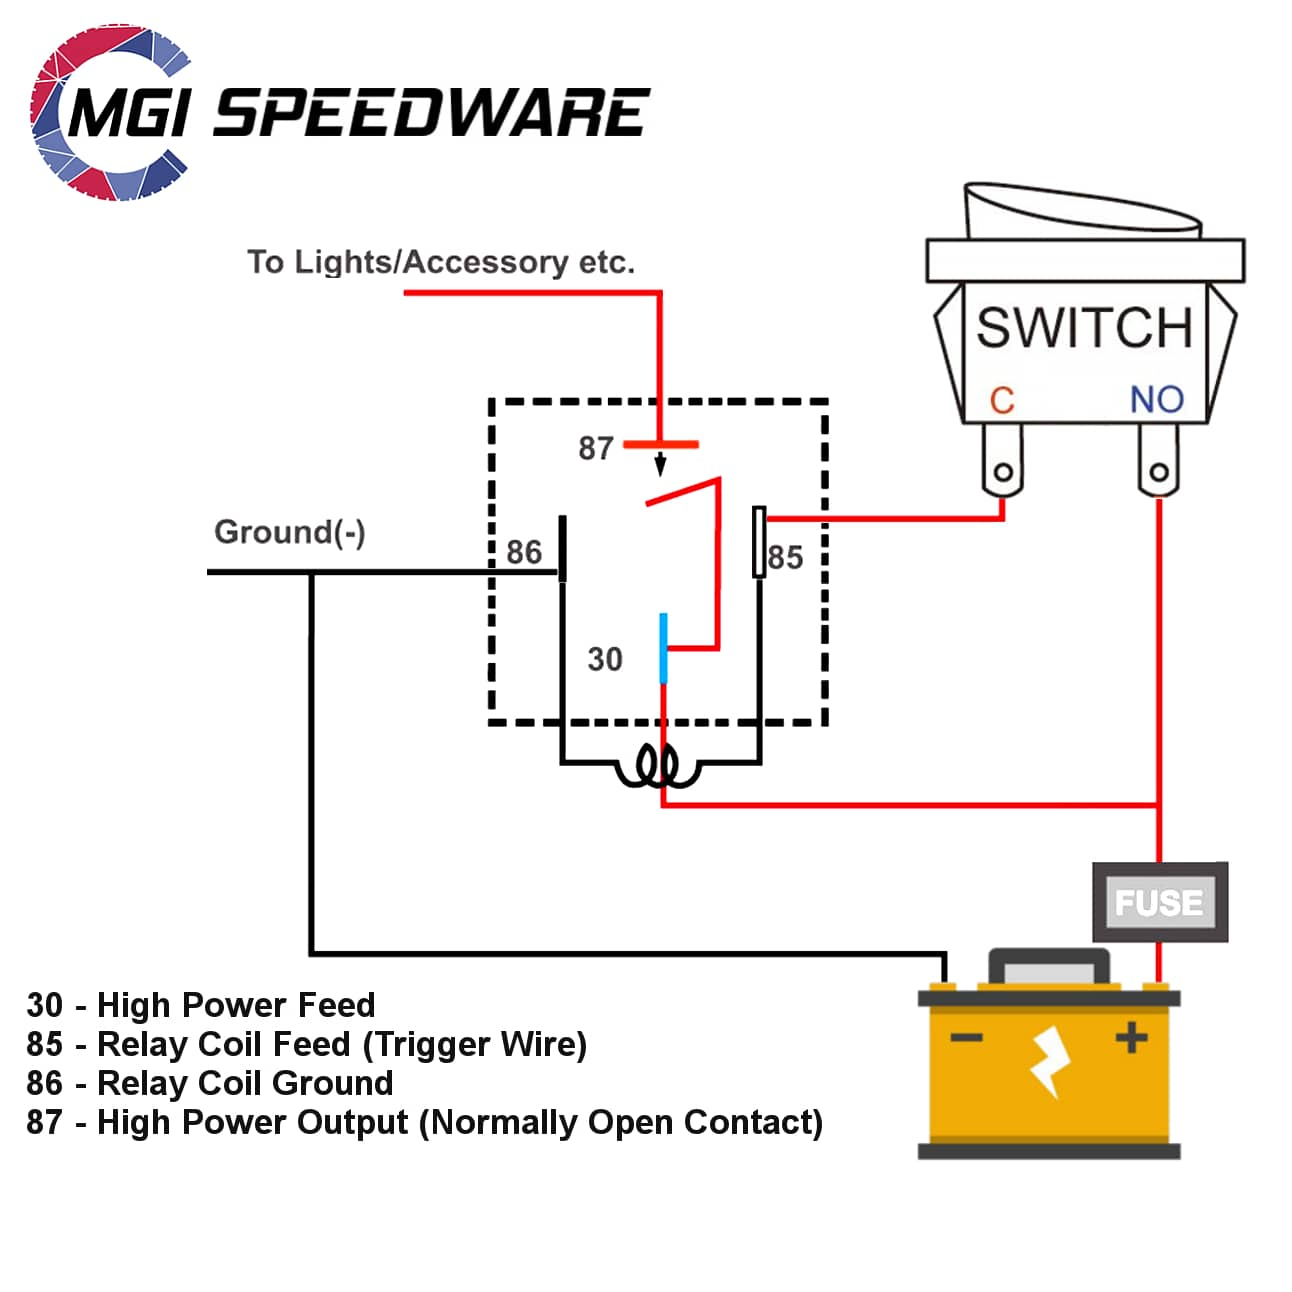 Automotive Fused    Relay    40A SPST   MGI SpeedWare